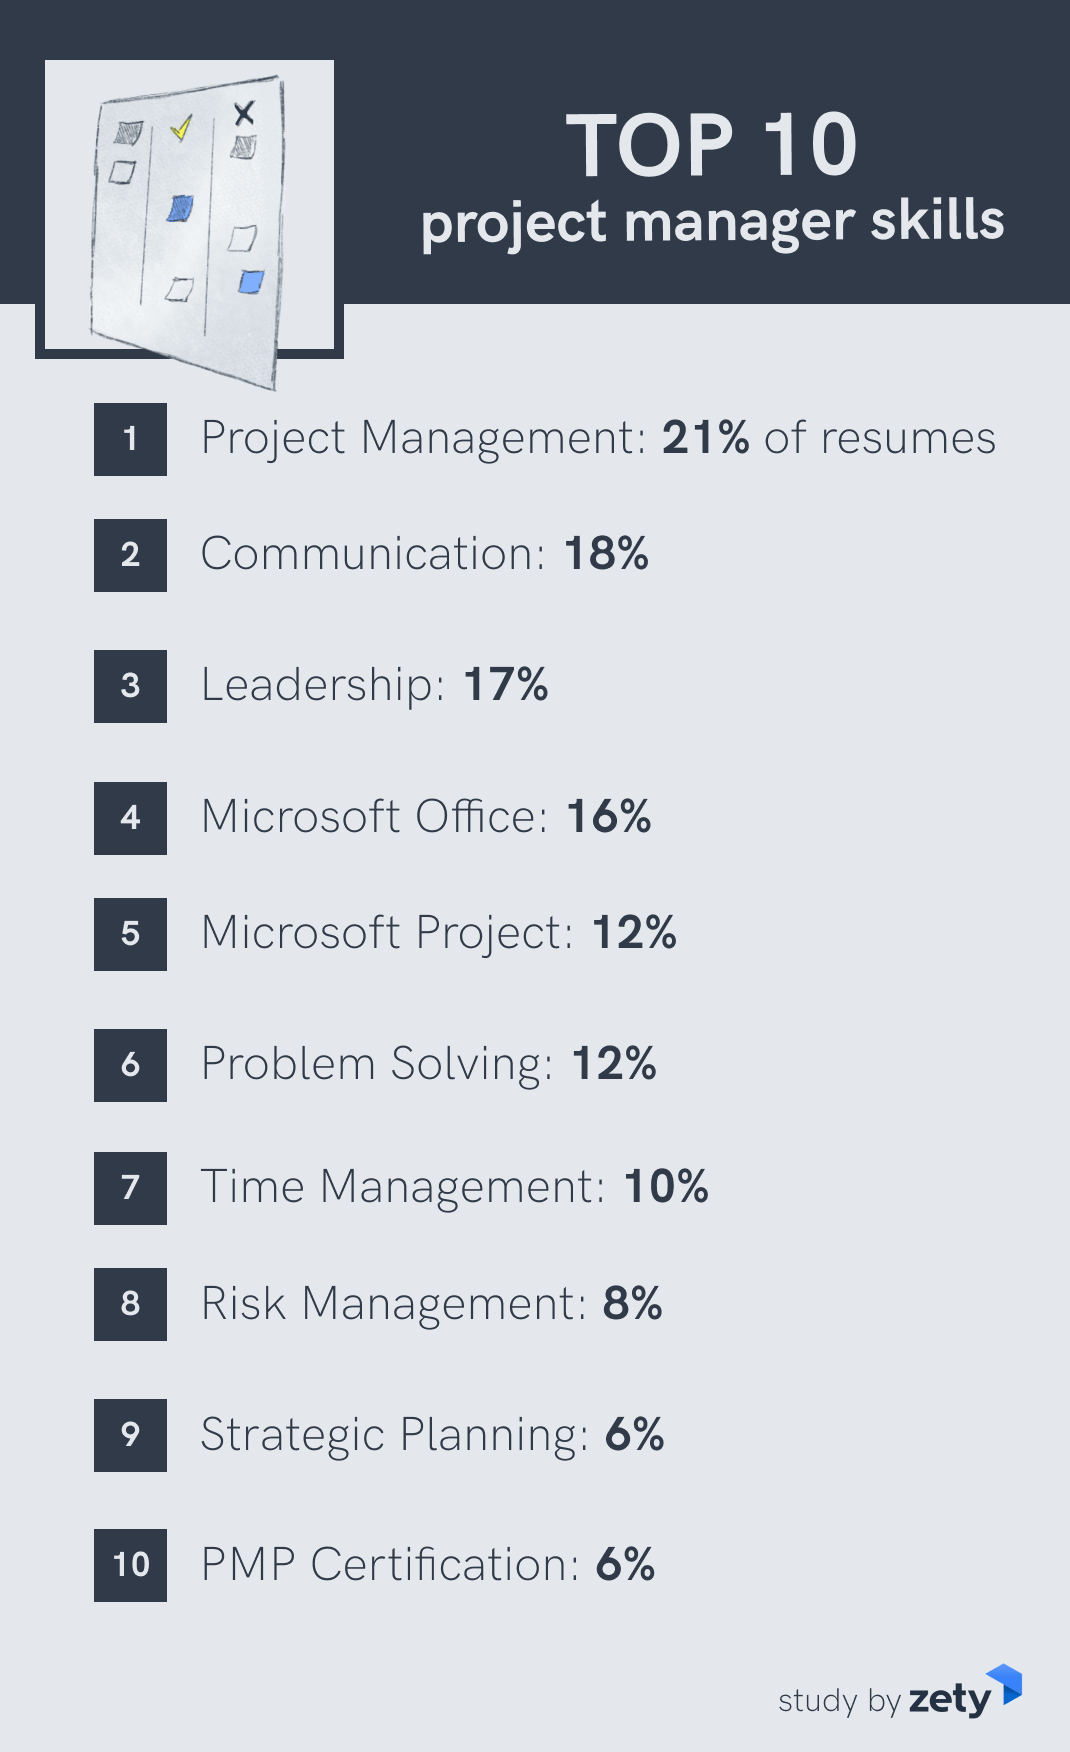 Top project manager skills